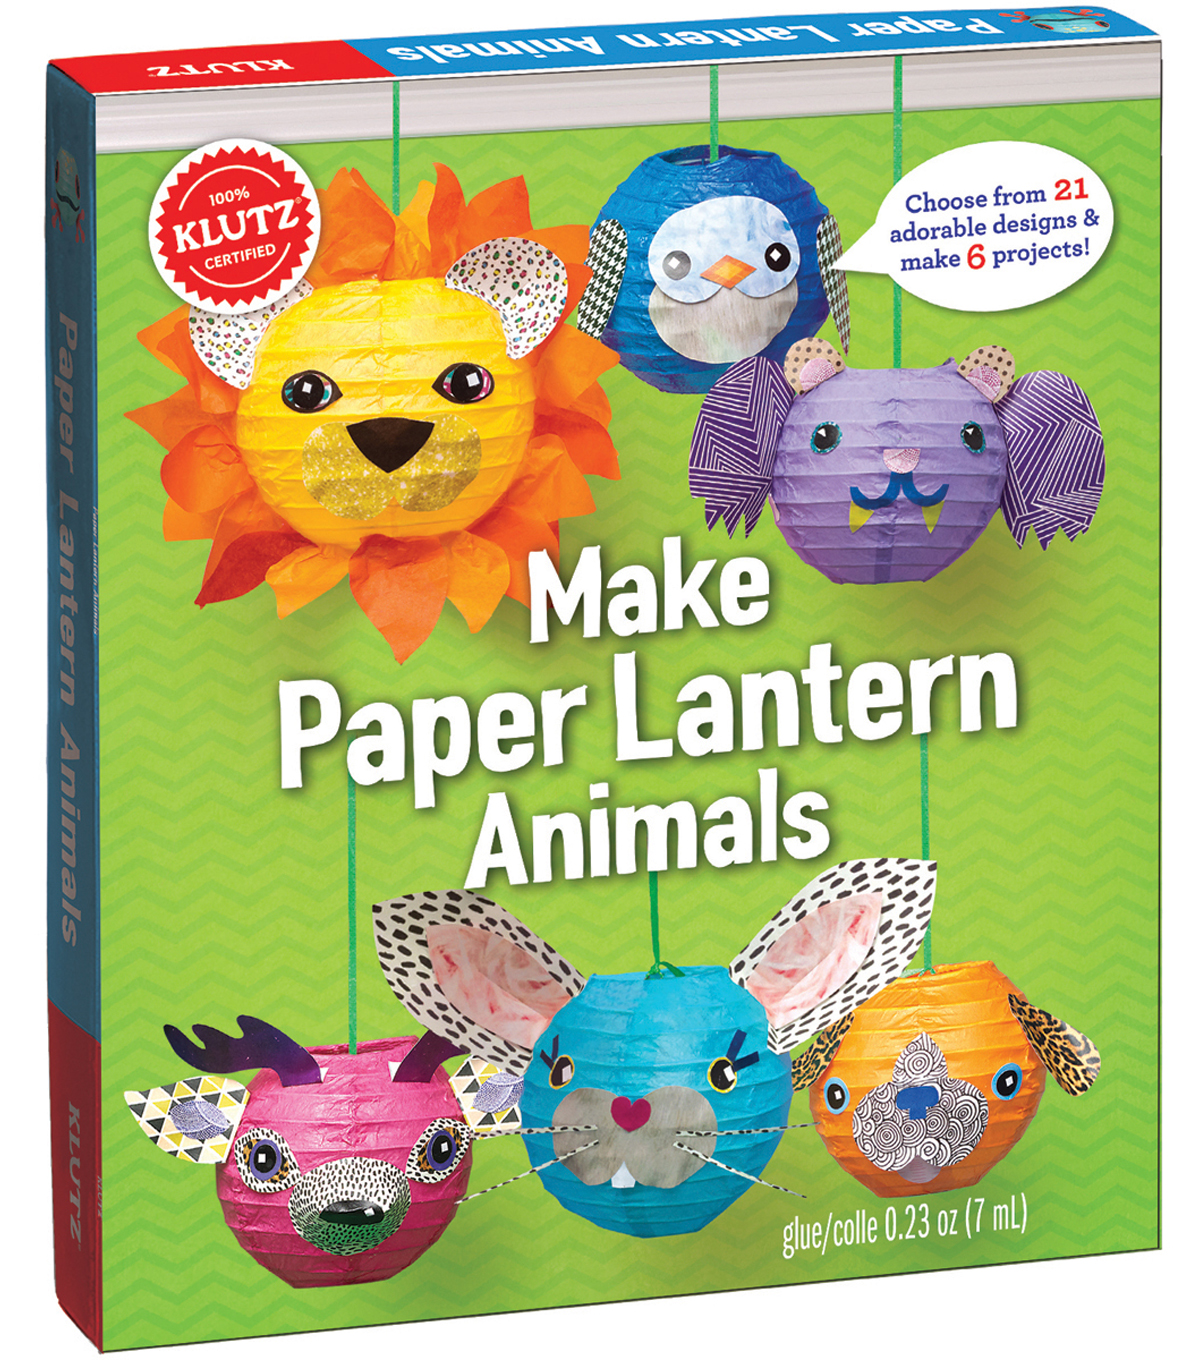 Make Paper Lantern Animals Kit